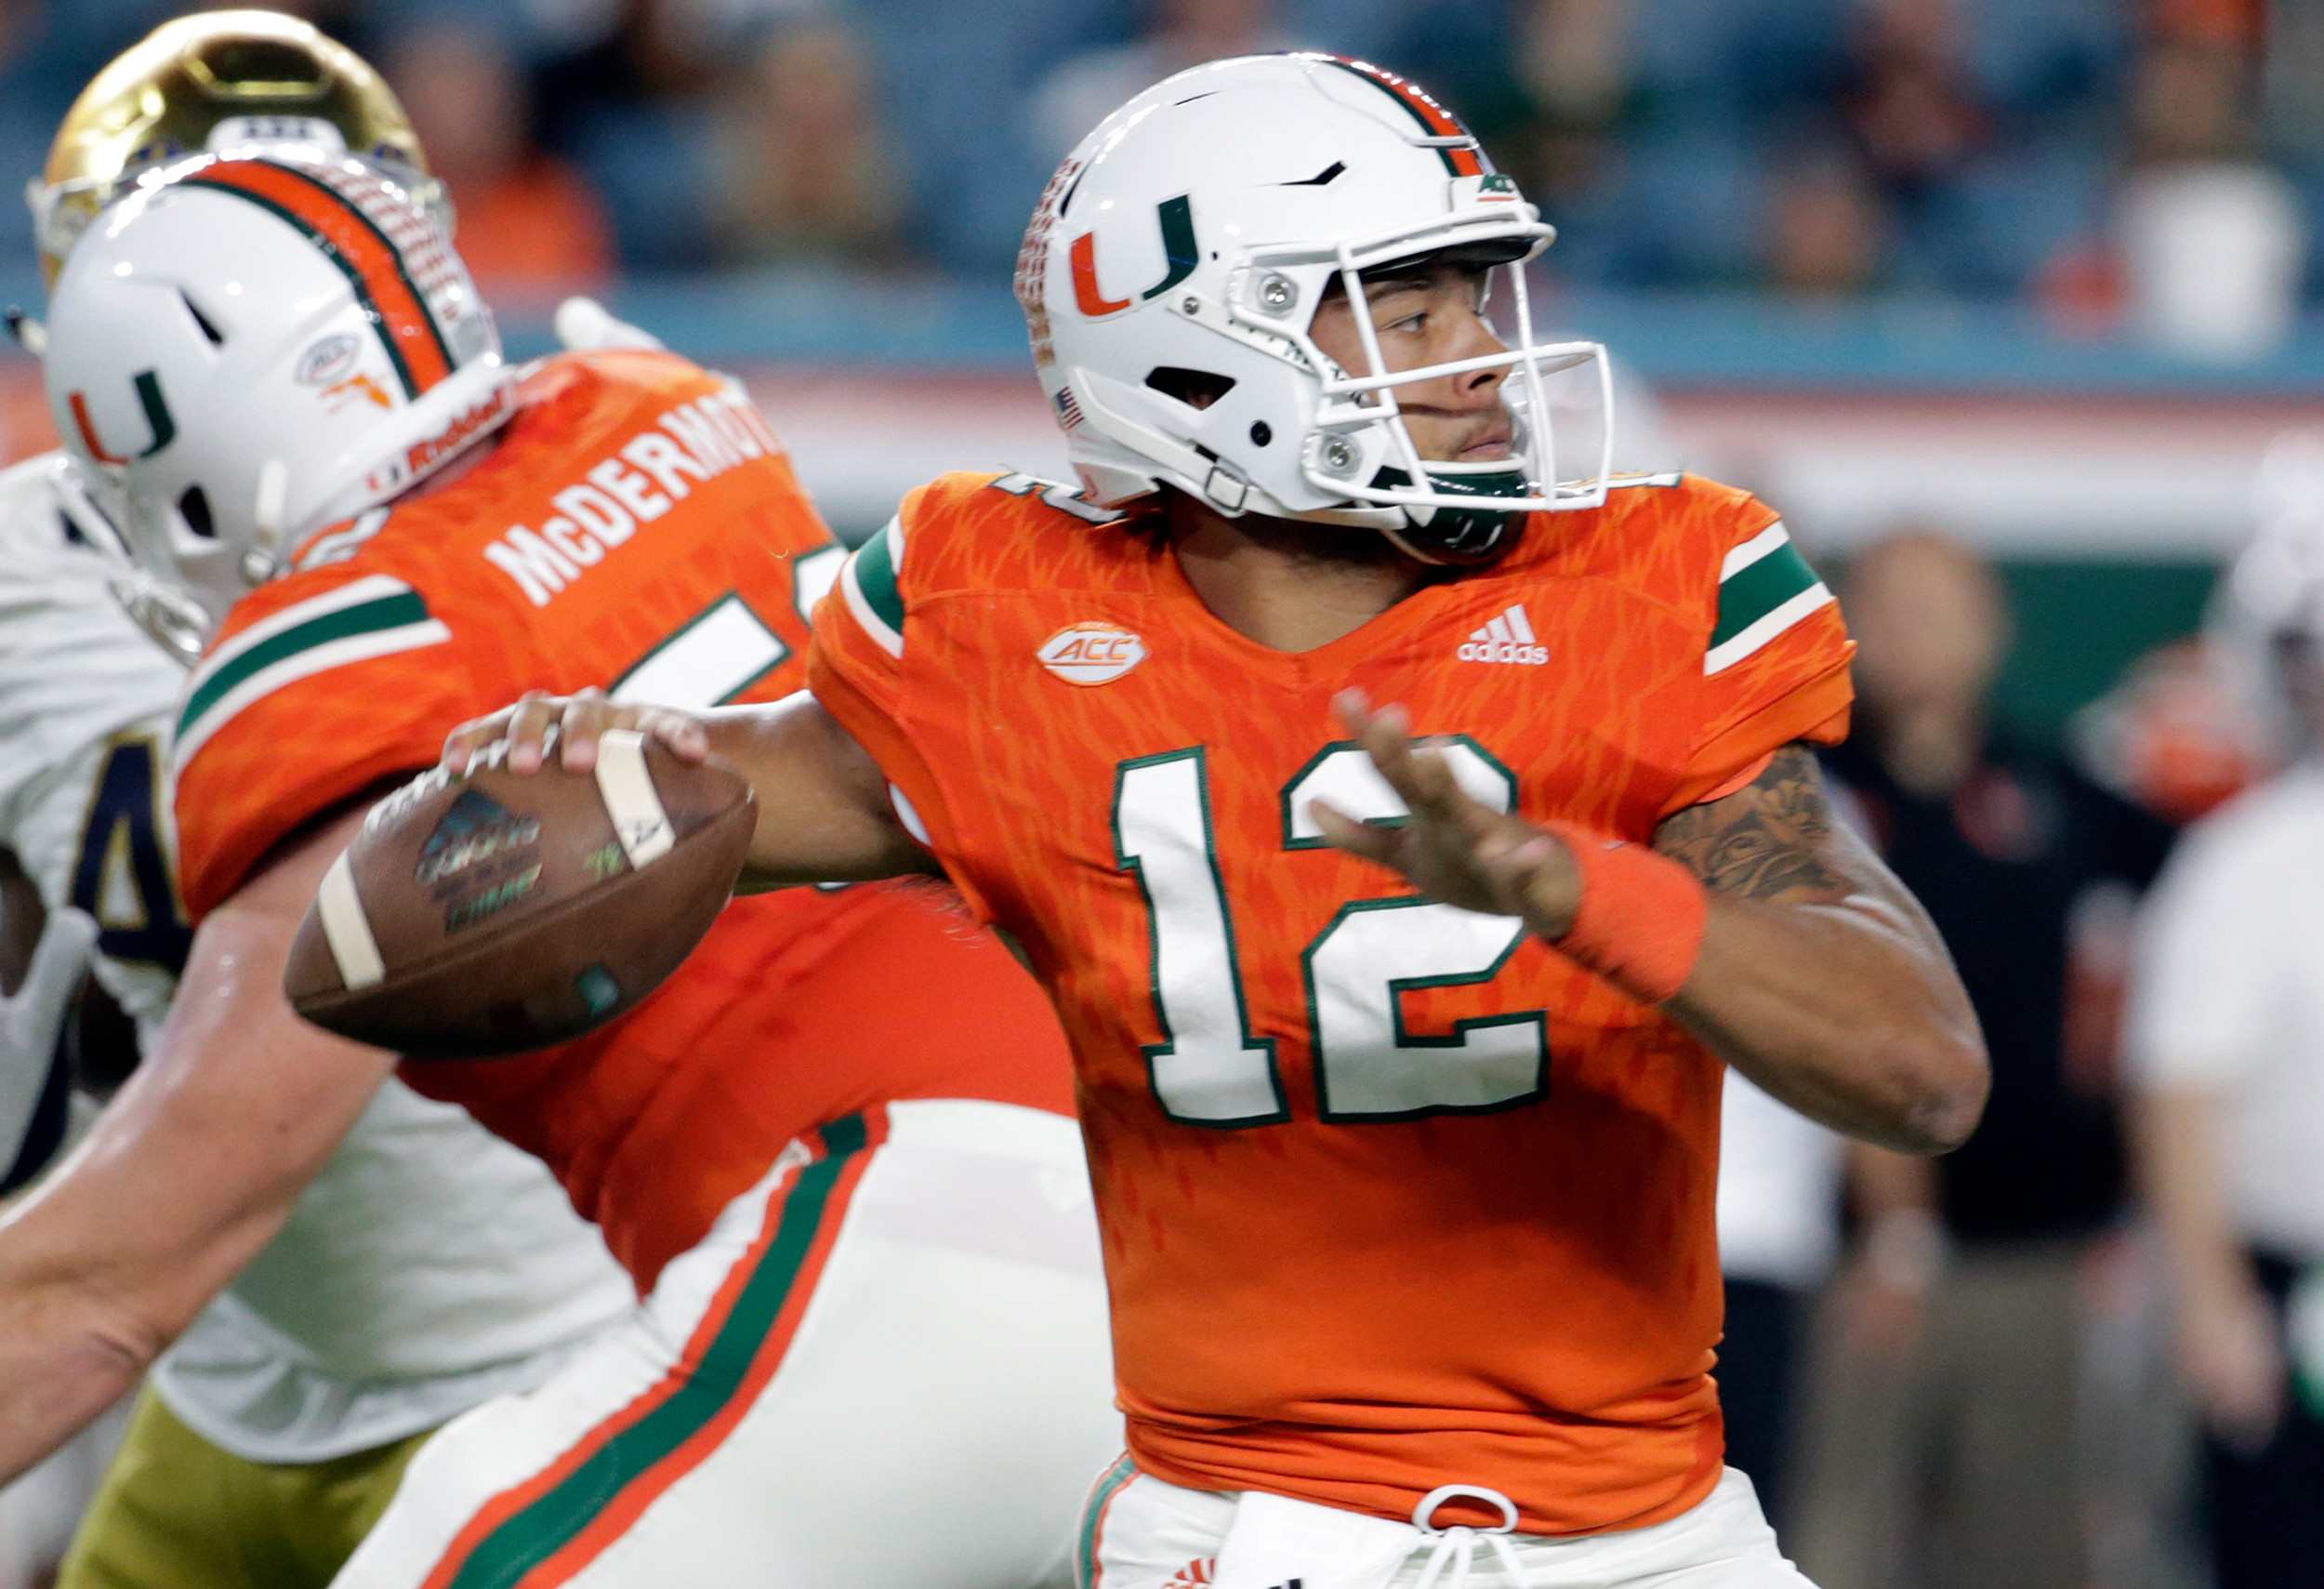 Miami quarterback Malik Rosier (12) has led Miami to the ACC championship game in his first year as a starter. The Hurricanes face Clemson today in Charlotte for the title.